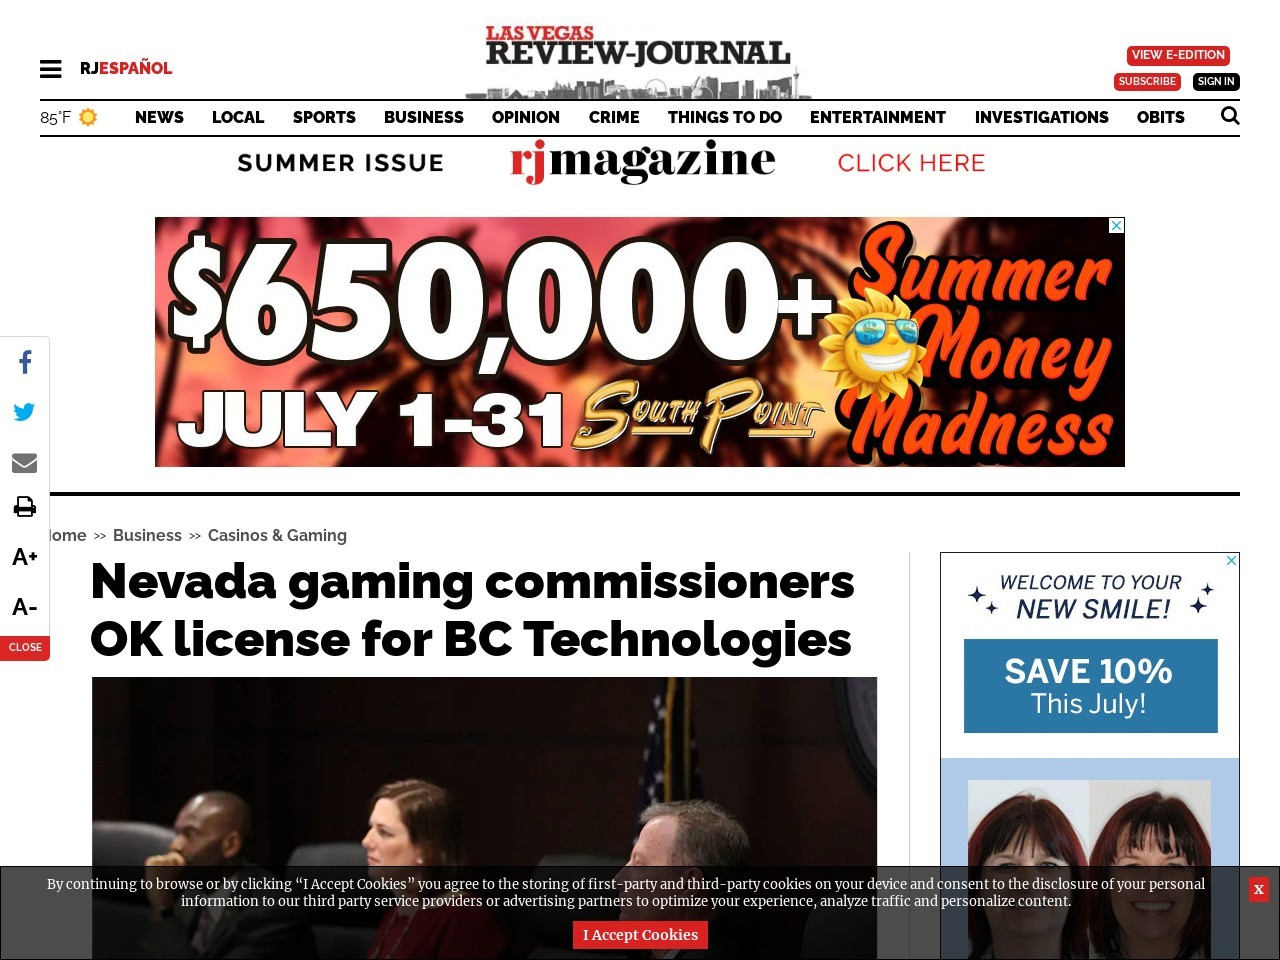 Nevada gaming commissioners OK license for BC Technologies